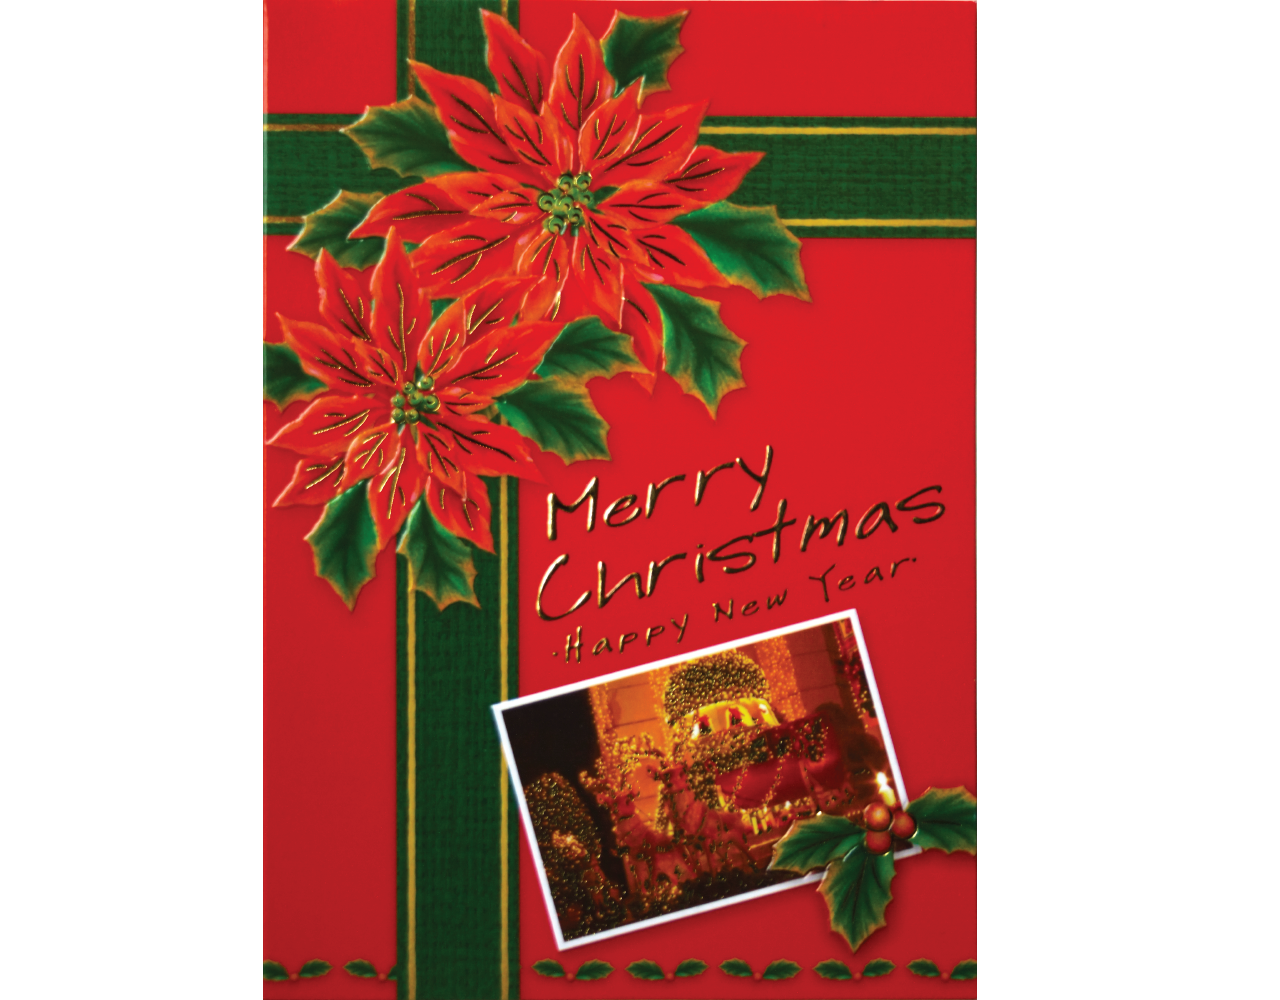 christmas card 5×7 inch GN.5721 ฿14.00